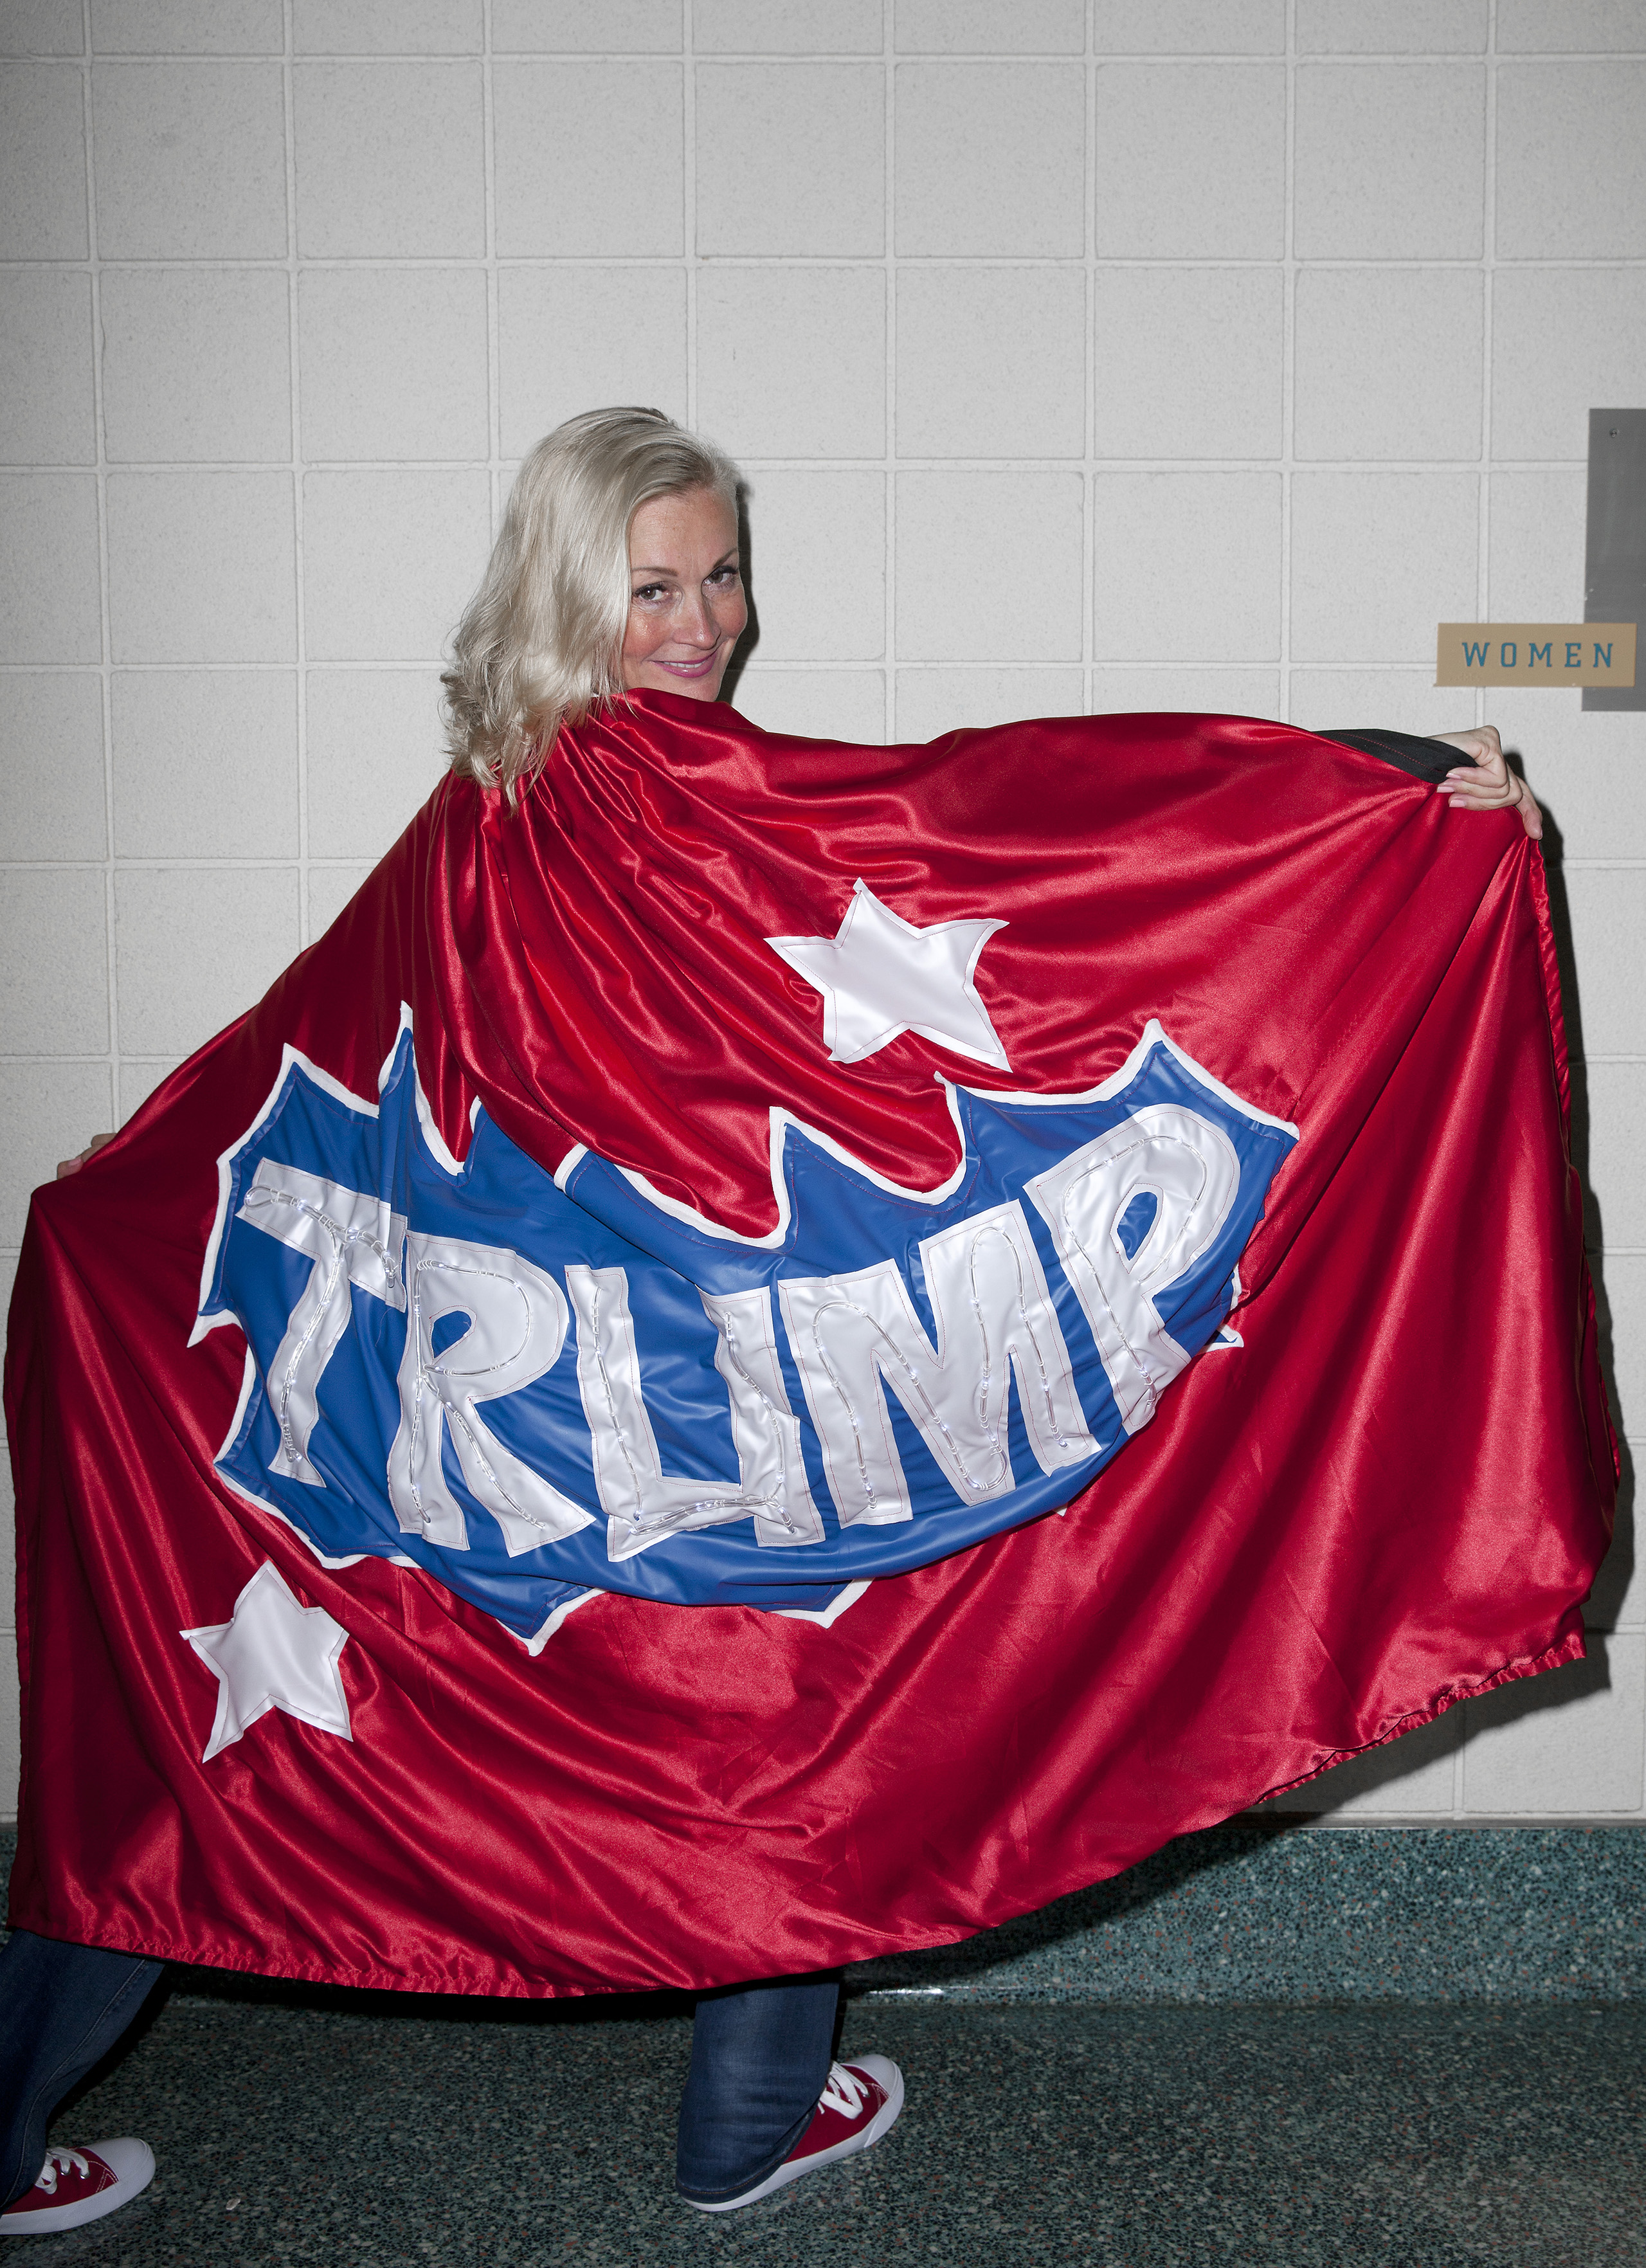 An attendee from Minnesota in a Trump cape at the Republican National Convention, on July 19, 2016 in Cleveland, Ohio.